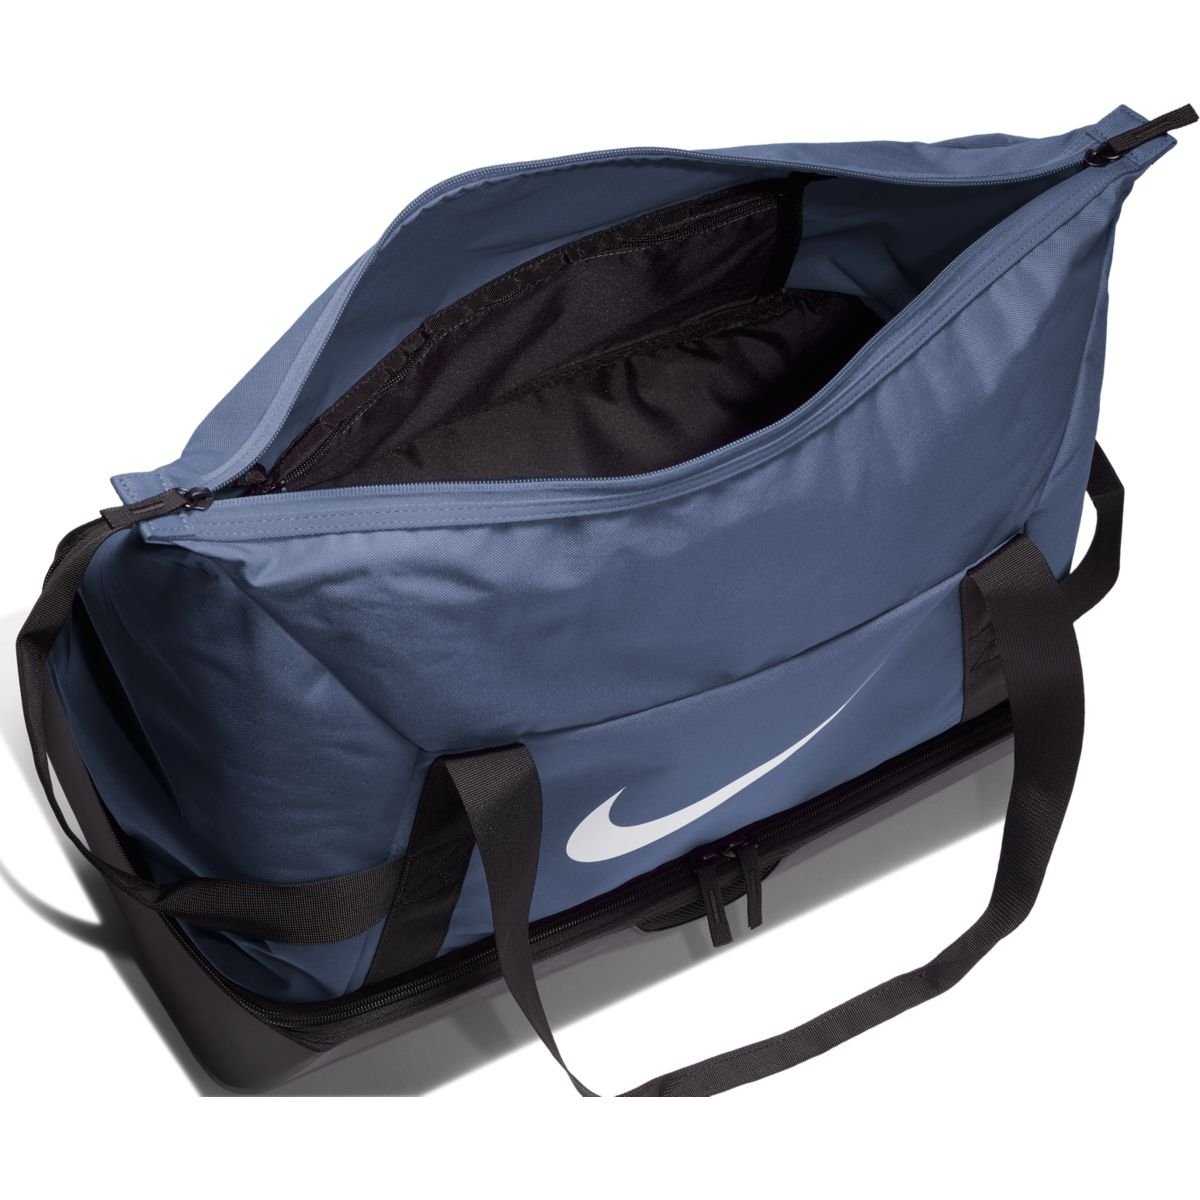 15fafda21a Nike NK Acdmy Team L Hdcs Sac à Main Mixte Adulte, Bleu (Midnight  Navy/Black /), 15x24x45 Centimeters (W x H x L): Amazon.fr: Sports et  Loisirs